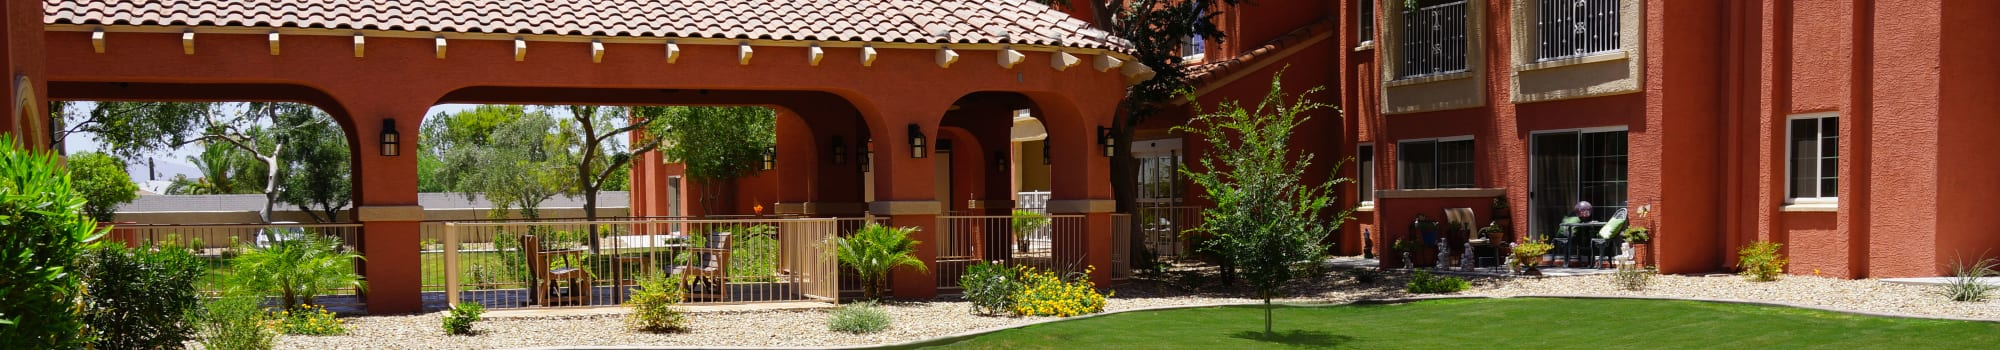 Meet the team at Casa Del Rio Senior Living in Peoria, Arizona